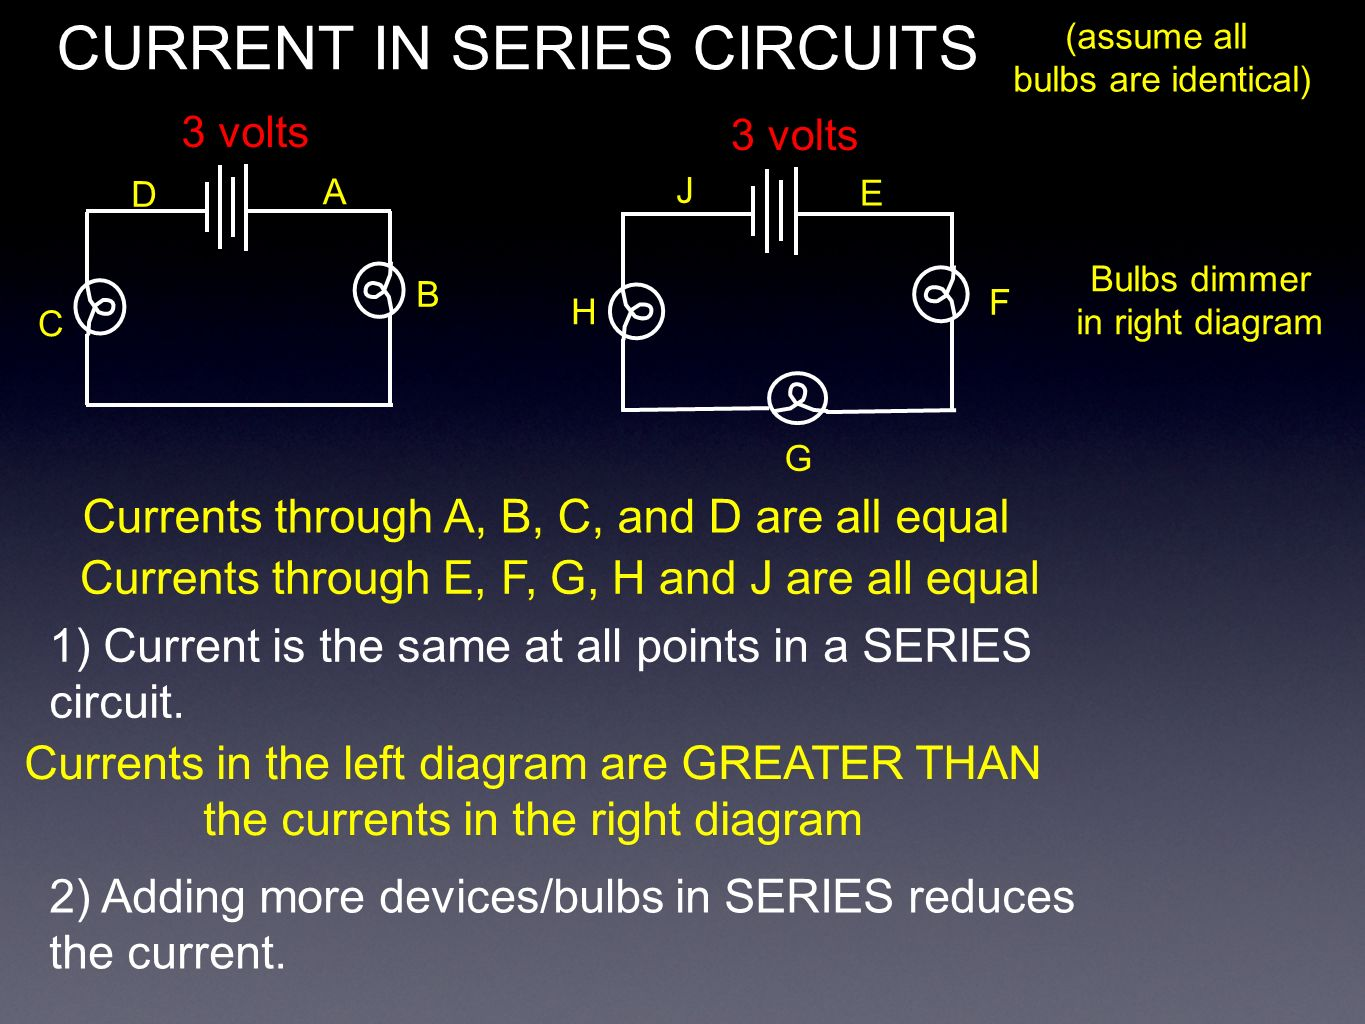 hight resolution of 4 current in series circuits 3 volts assume all bulbs are identical a b c d currents through a b c and d are all equal currents through e f g